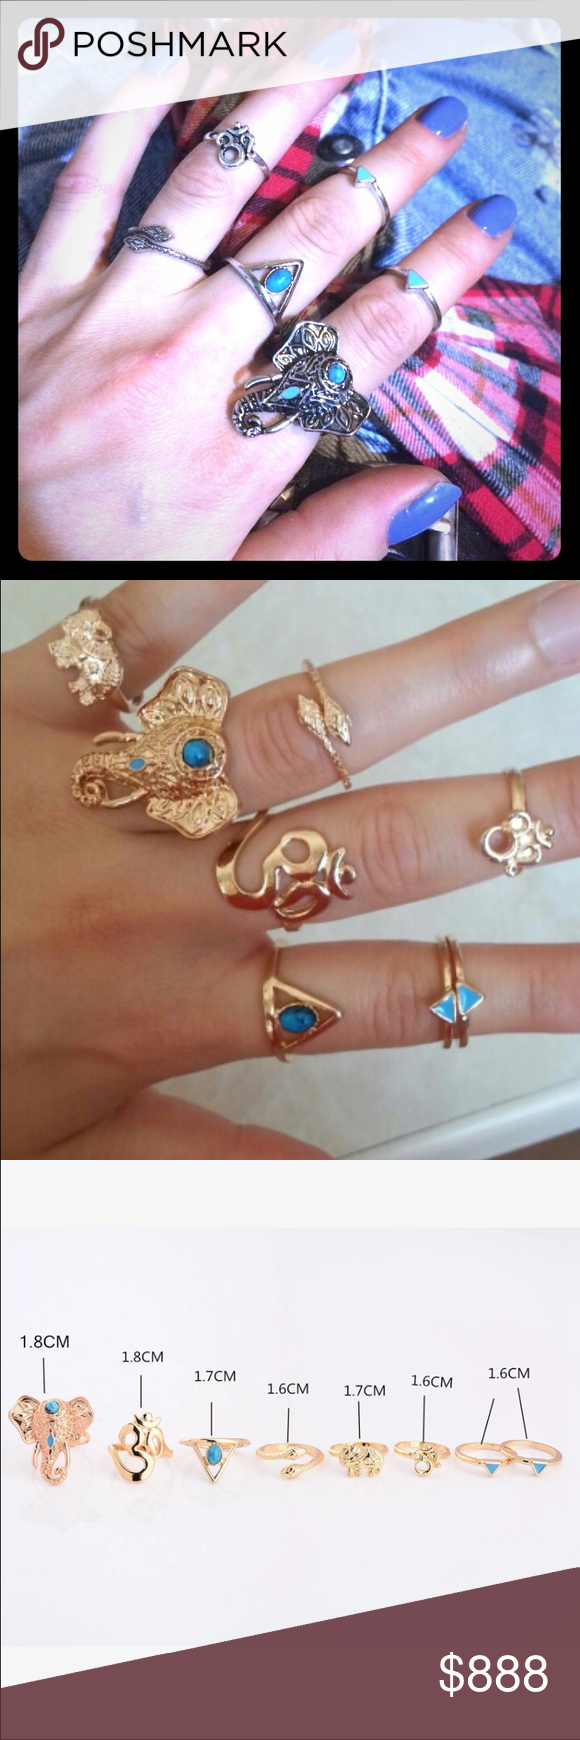 wholesale boho elephant rings GOLD OR SILVER SET SETS OF 5 or 8 BOHO STYLE RINGS WILL BE AVAIL IN BOTH SILVER & GOLD IN WHOLESALE Lots OF 3 entire sets! RETAIL READY! Packages  are like all of my orders.. With love! U COUTURE Jewelry Rings